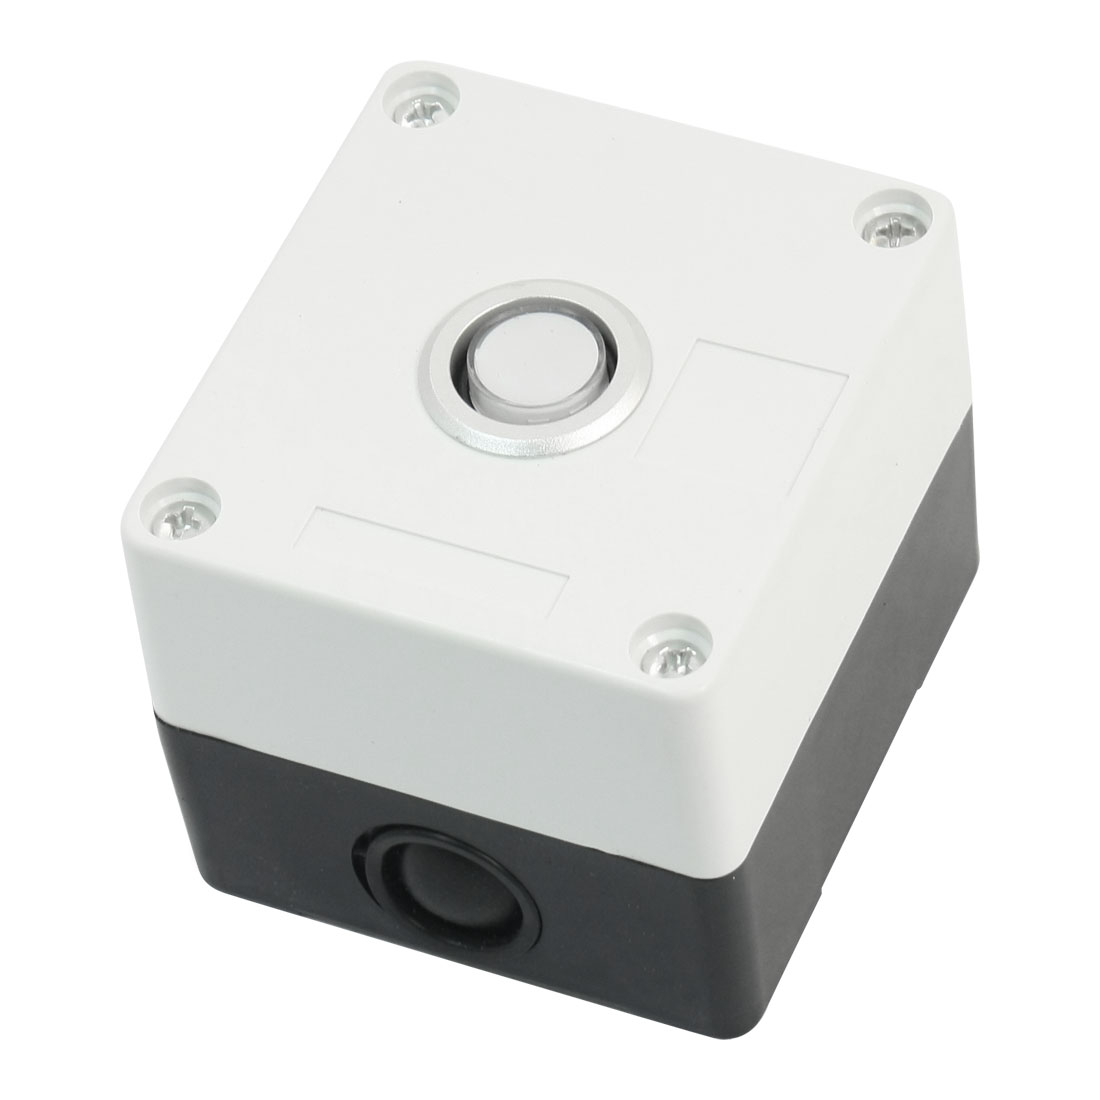 AC 220V 5A Warm White Lamp SPDT 1NO 1NC 5Pin Momentary Reset Plastic Case Push Button Station Switch Control Protector Box